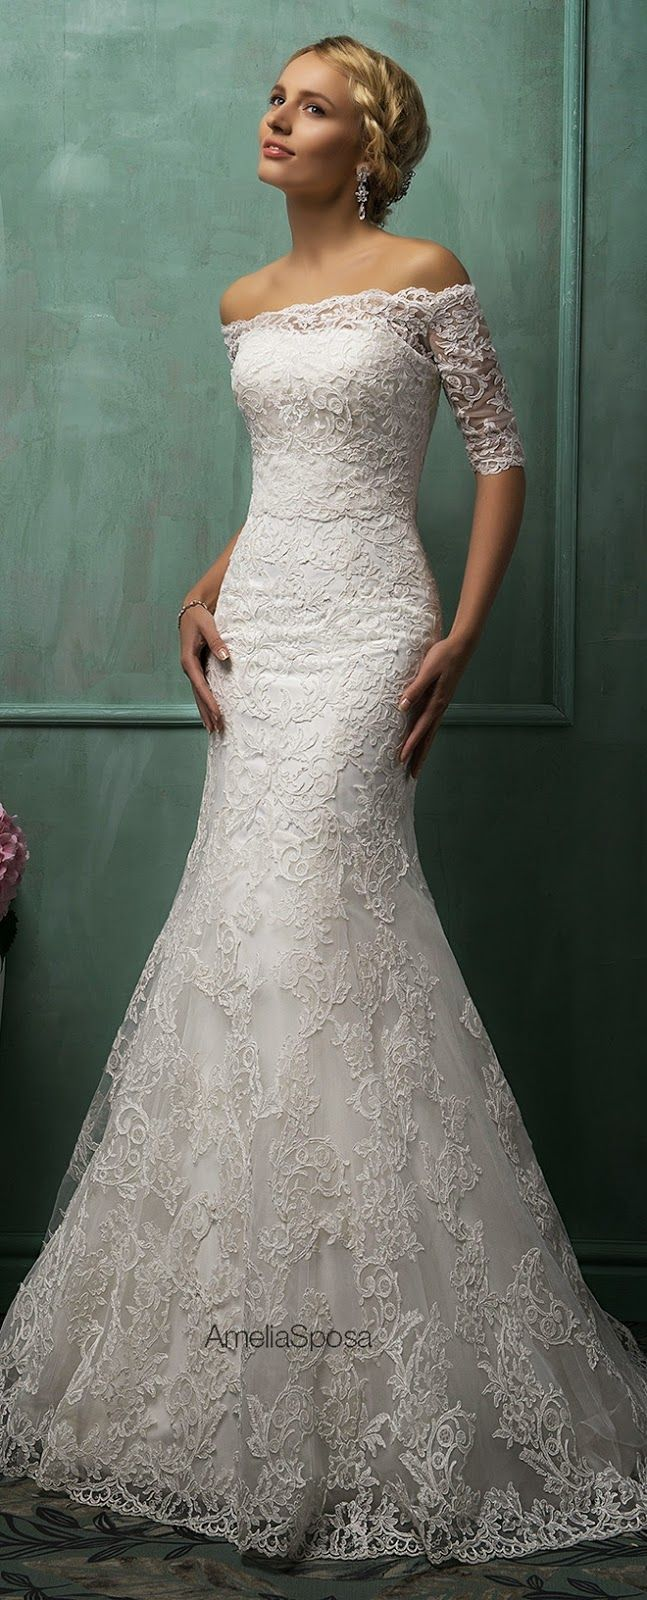 Gorgeous amelia sposa wedding dress and ium not one for sleeves